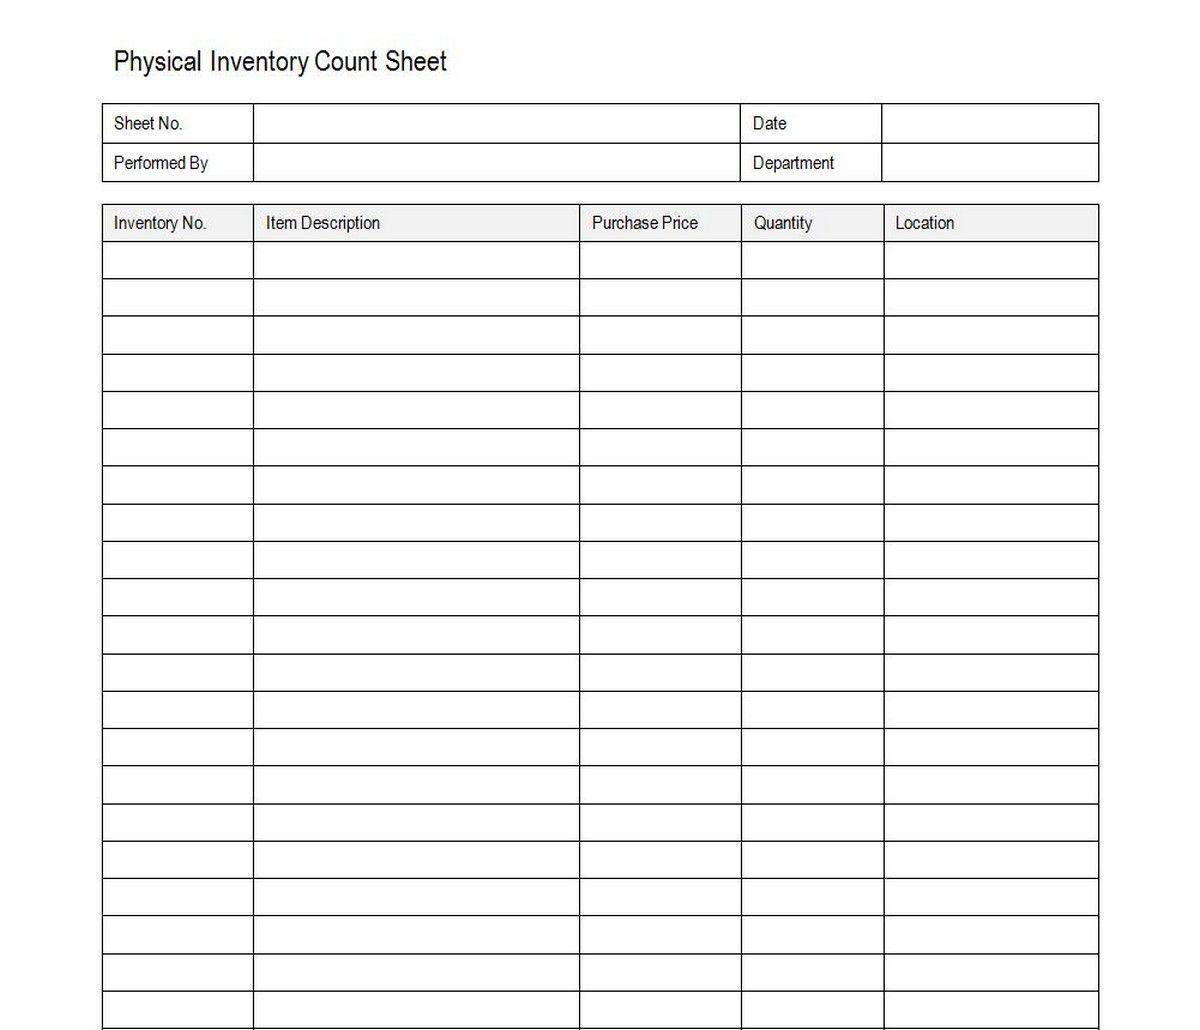 Liquor Inventory Control Spreadsheet For Liquor Inventory Control Spreadsheet .liquor Inventory Control